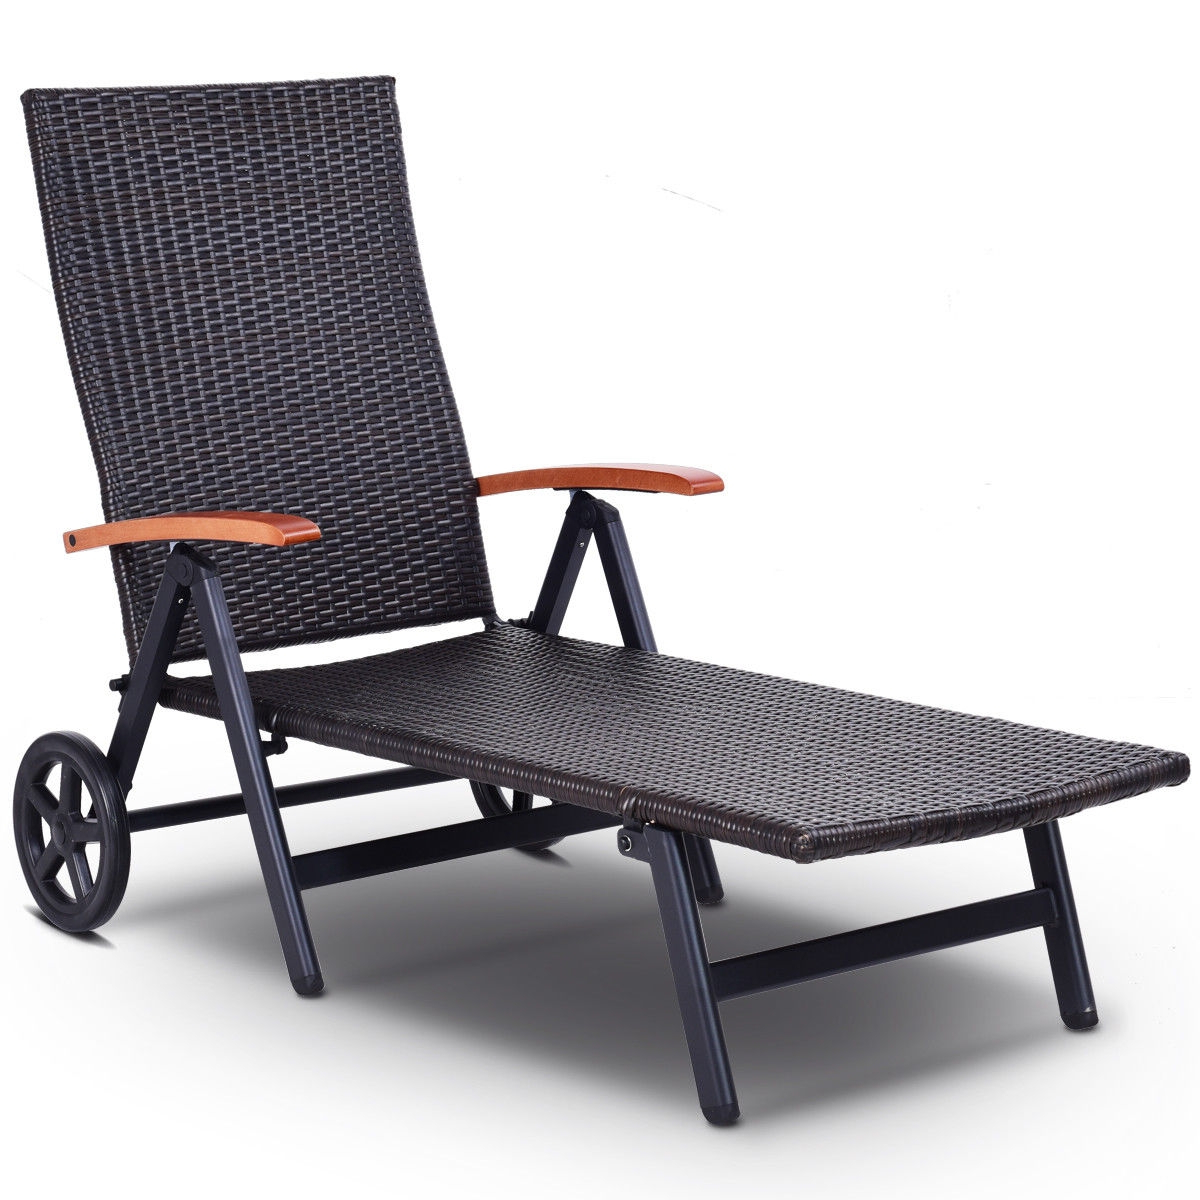 Most Recently Released Folding Back Adjustable Aluminum Rattan Recliner Lounger W/ Wheels Regarding Wicker Chaise Back Adjustable Patio Lounge Chairs With Wheels (View 7 of 25)